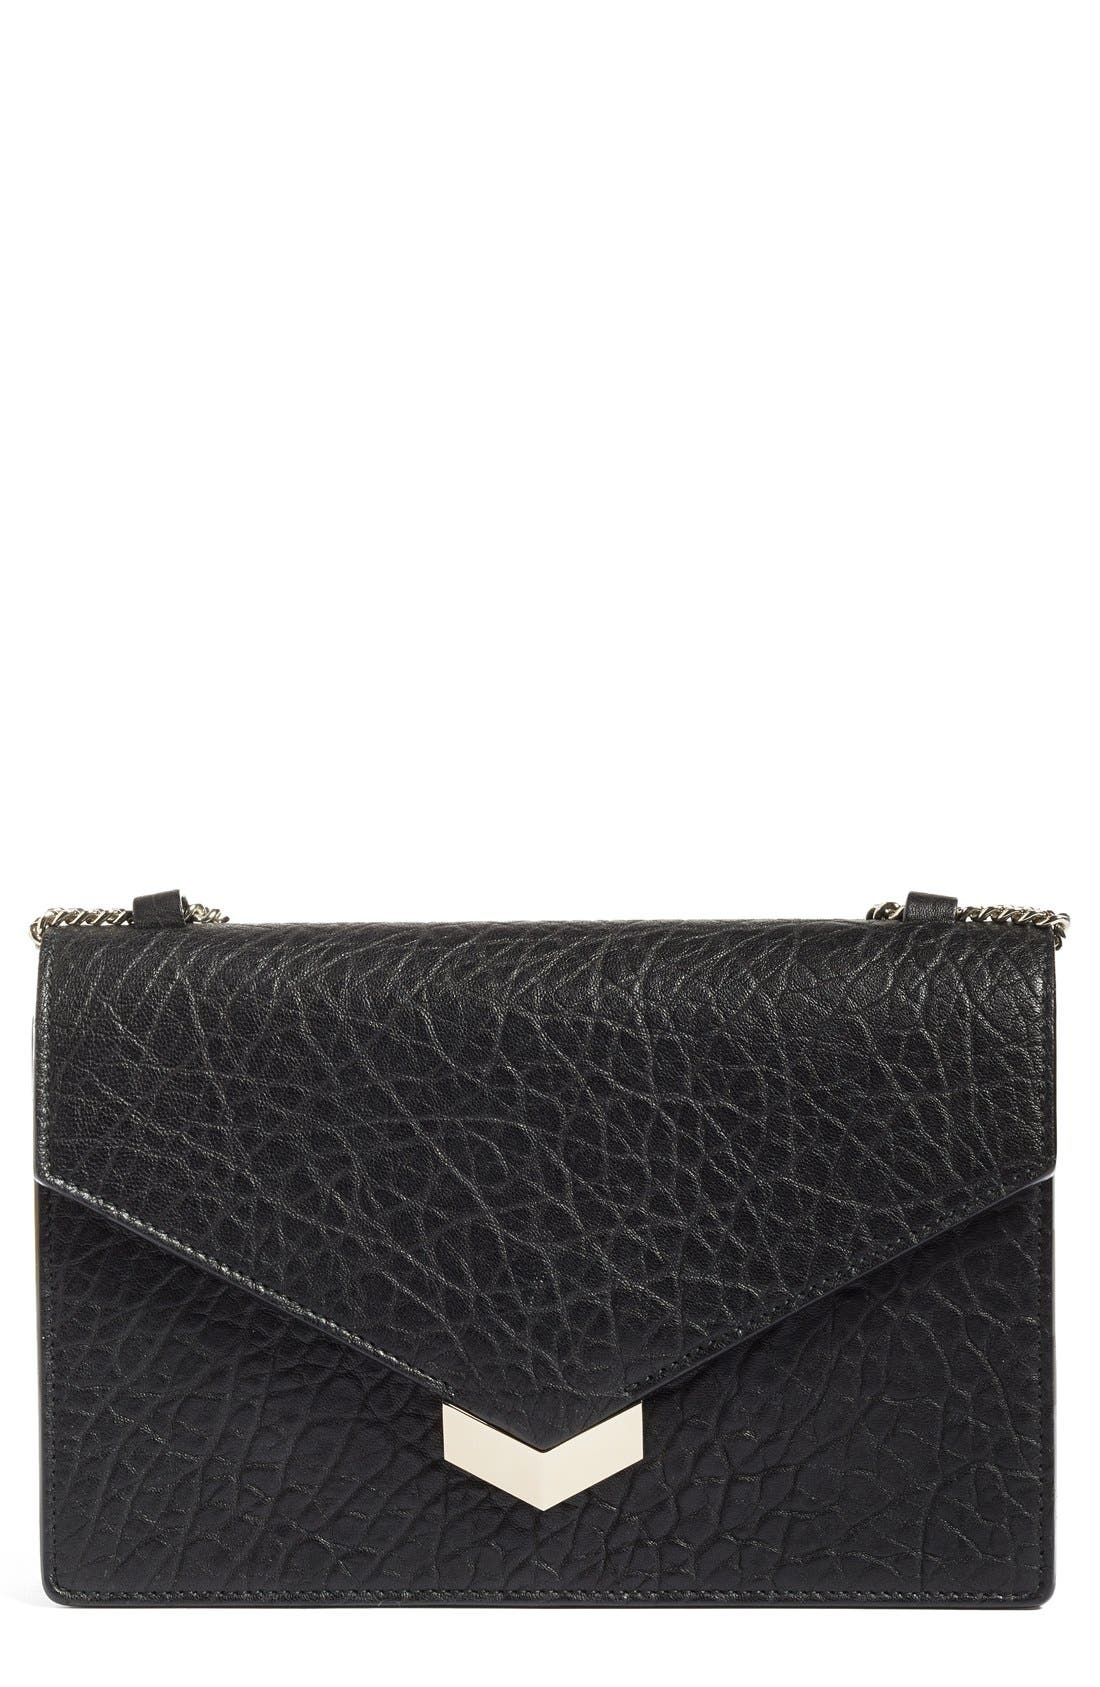 Alternate Image 1 Selected - Jimmy Choo Leila Grainy Lambskin Leather Crossbody Bag